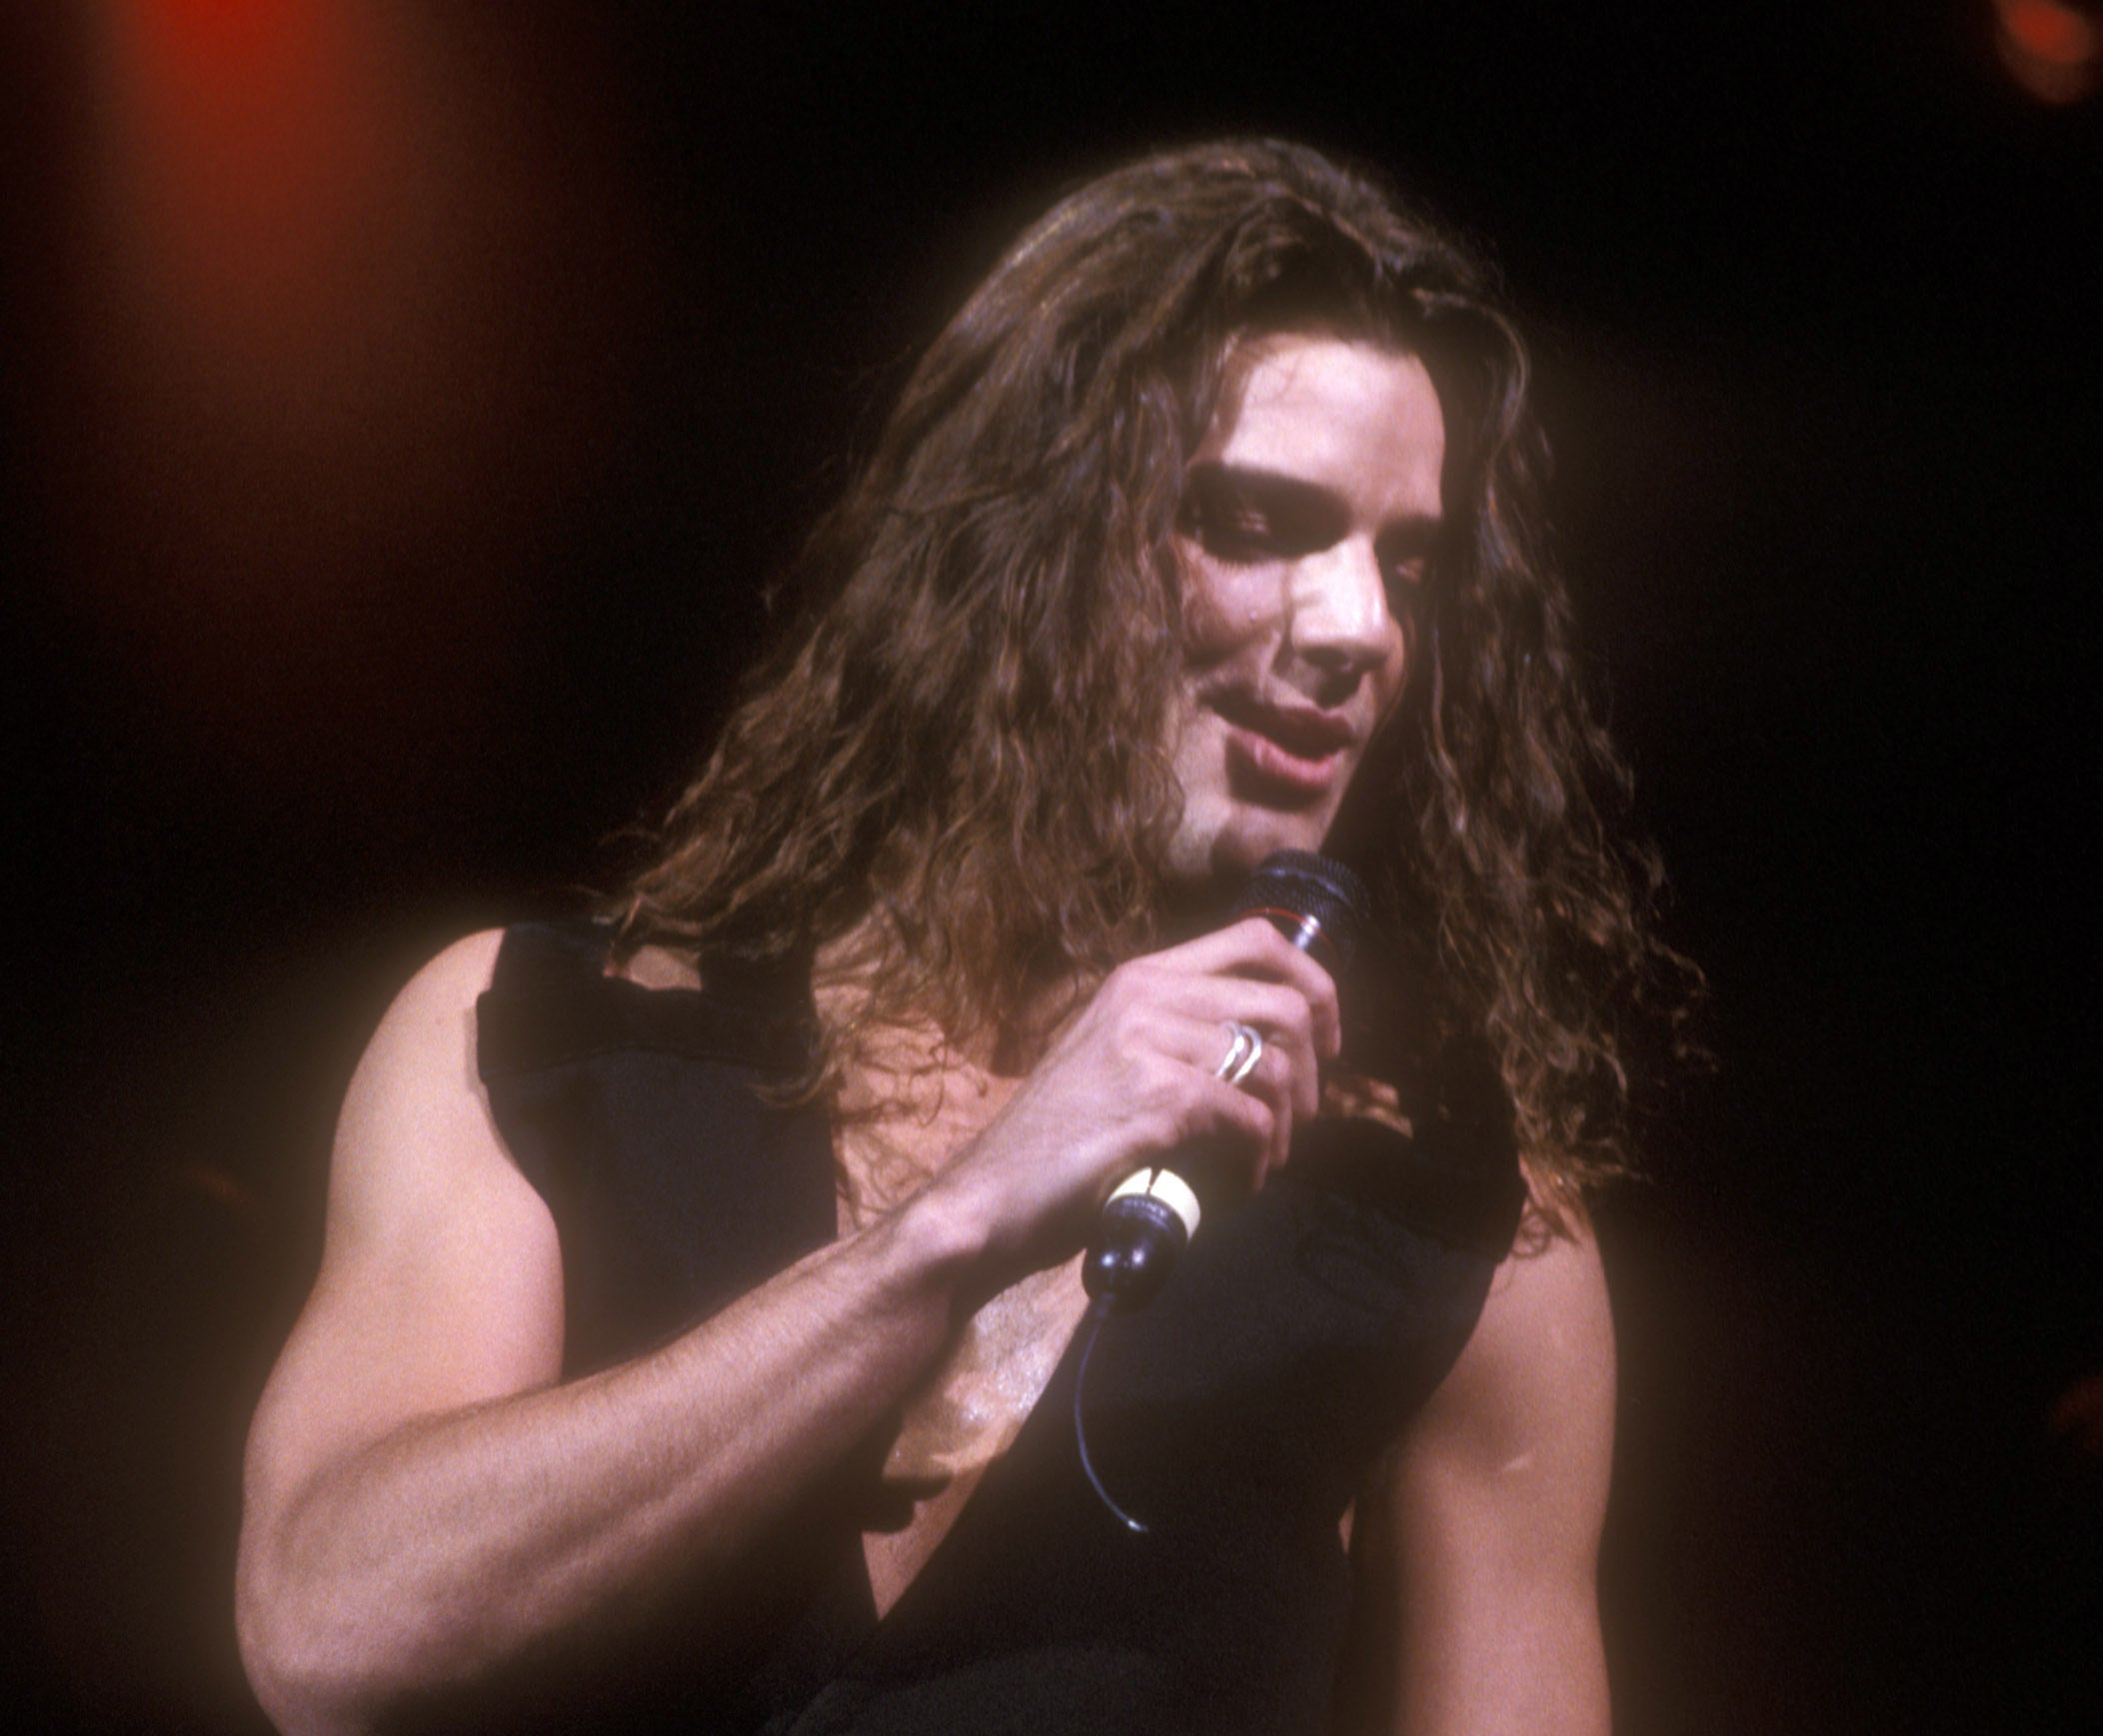 Ricky Martin performing a concert with shoulder-length hair and wearing only a vest